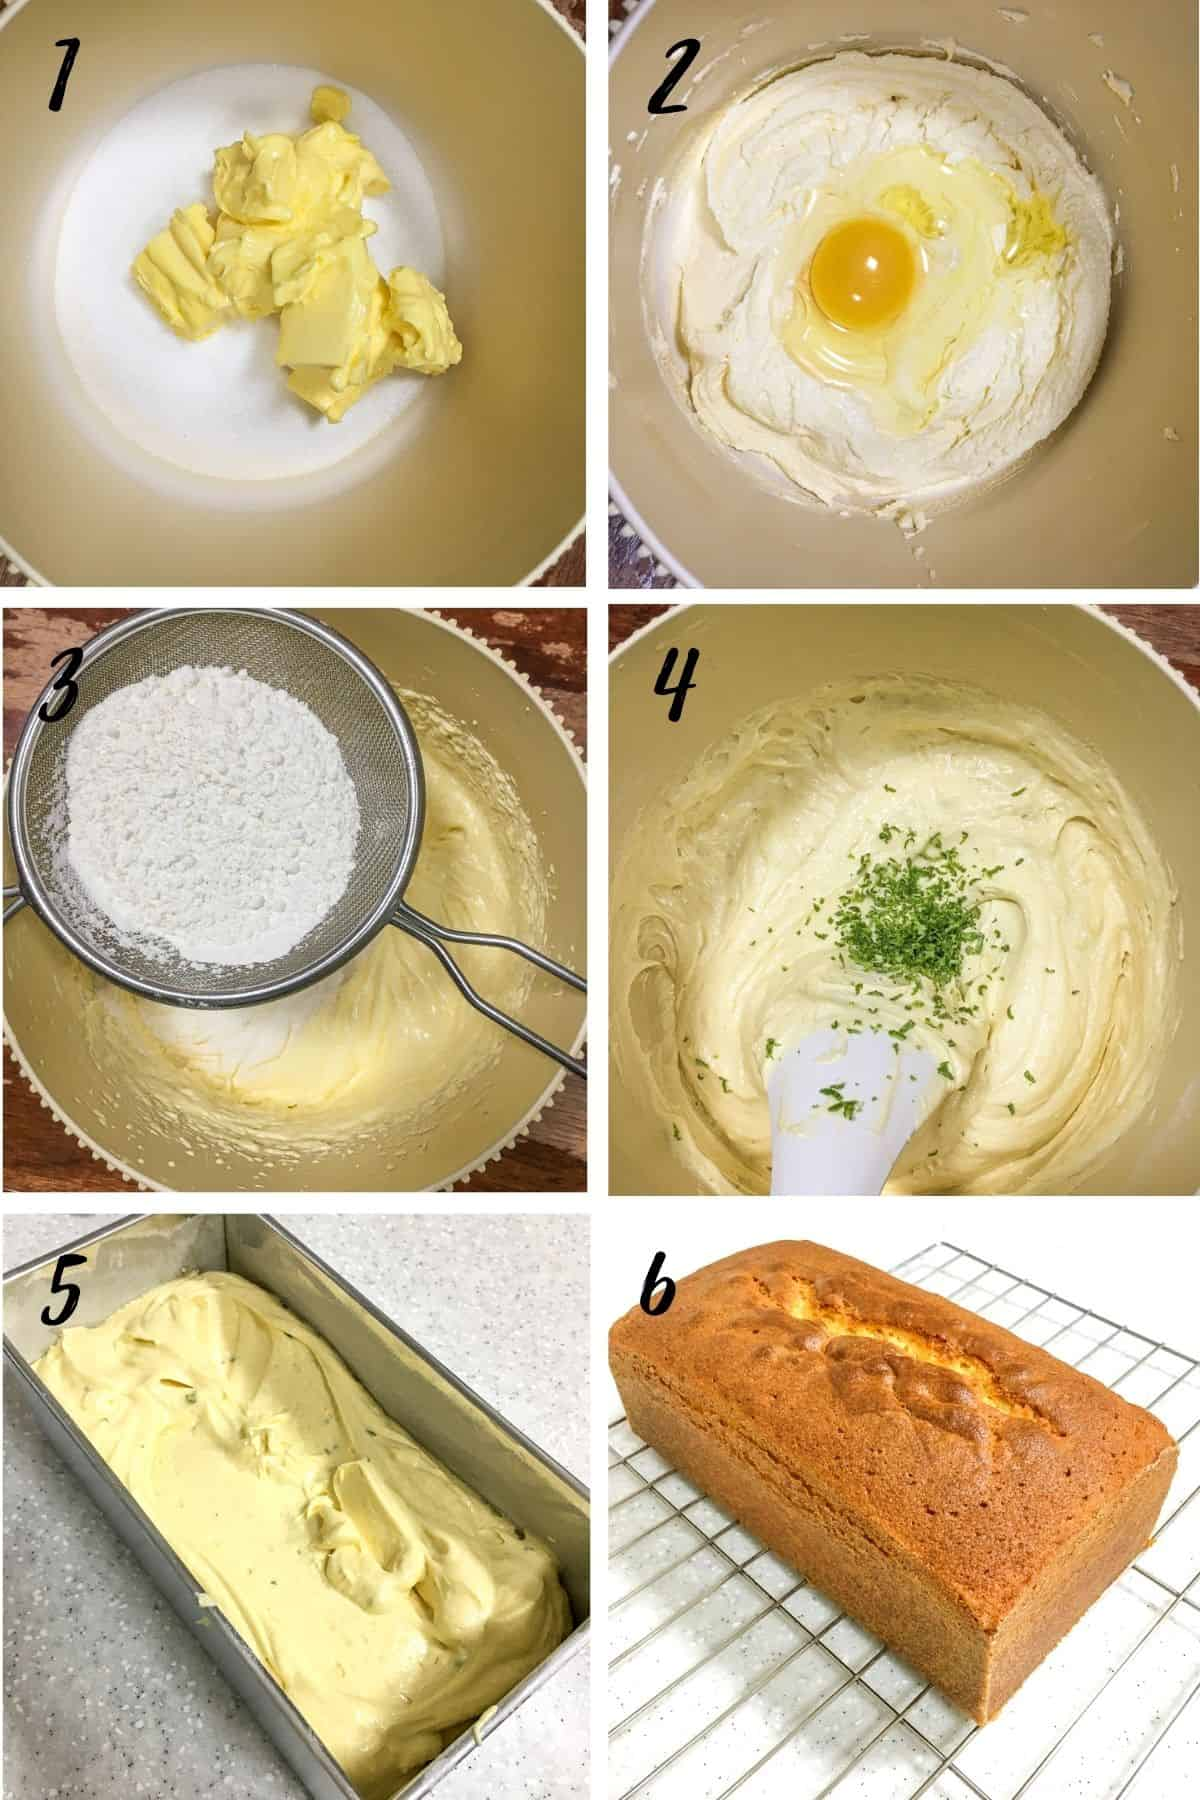 A poster of 6 images showing how to mix lime pound cake batter